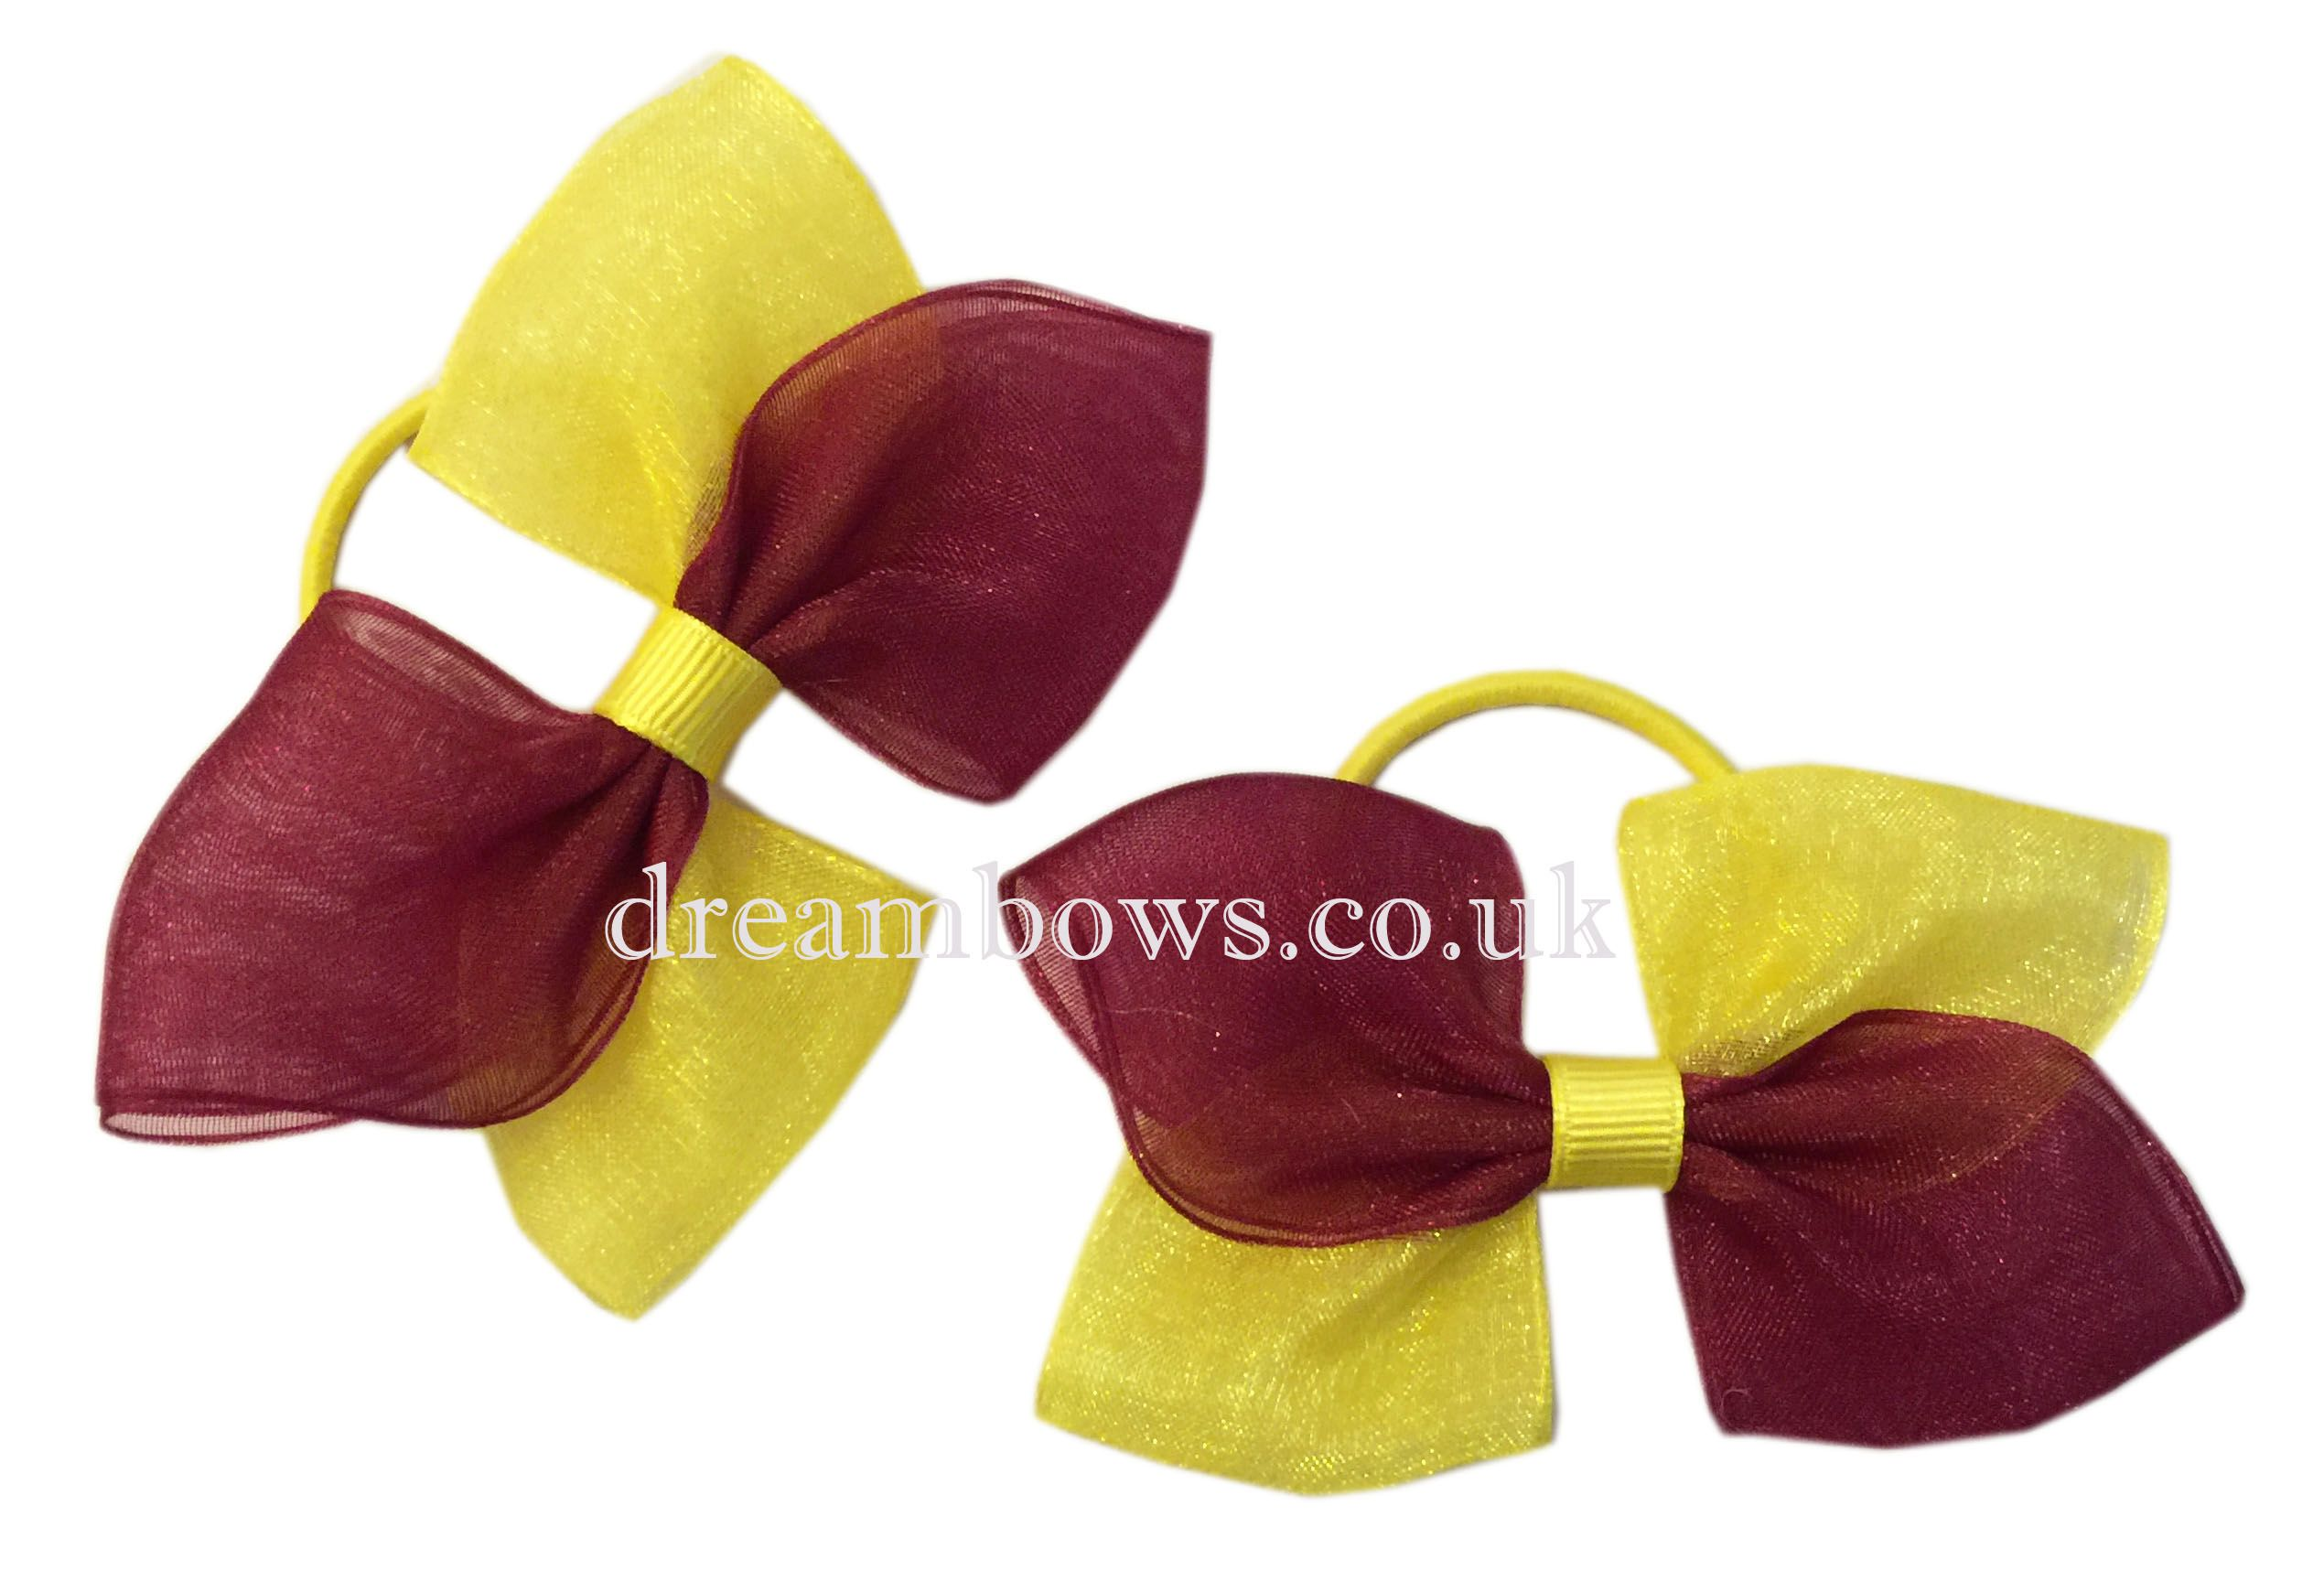 Ha hair accessories for sale - Bows For Sale At Affordable Prices Quality Handmade Hair Bows And Hair Accessories For Girls